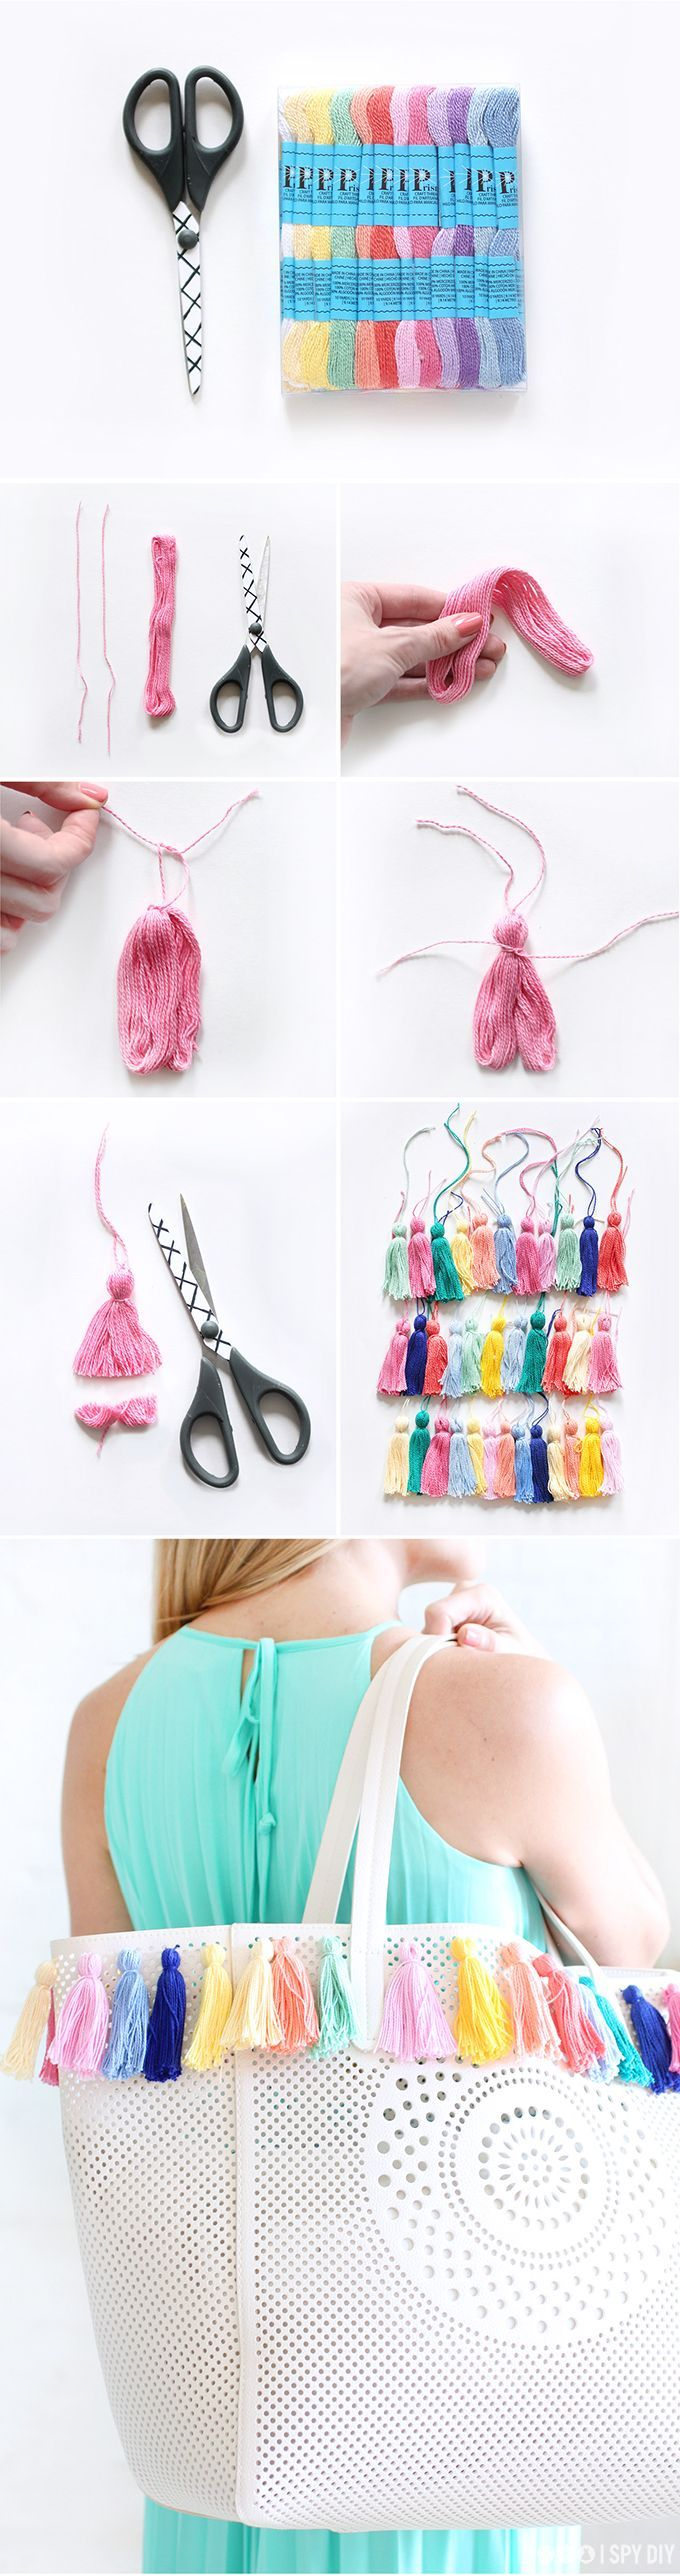 Diy Crafts Ideas : DIY Tassel Bag... https://diypick.com/decoration/decorative-objects/crafts/diy-crafts-ideas-diy-tassel-bag/